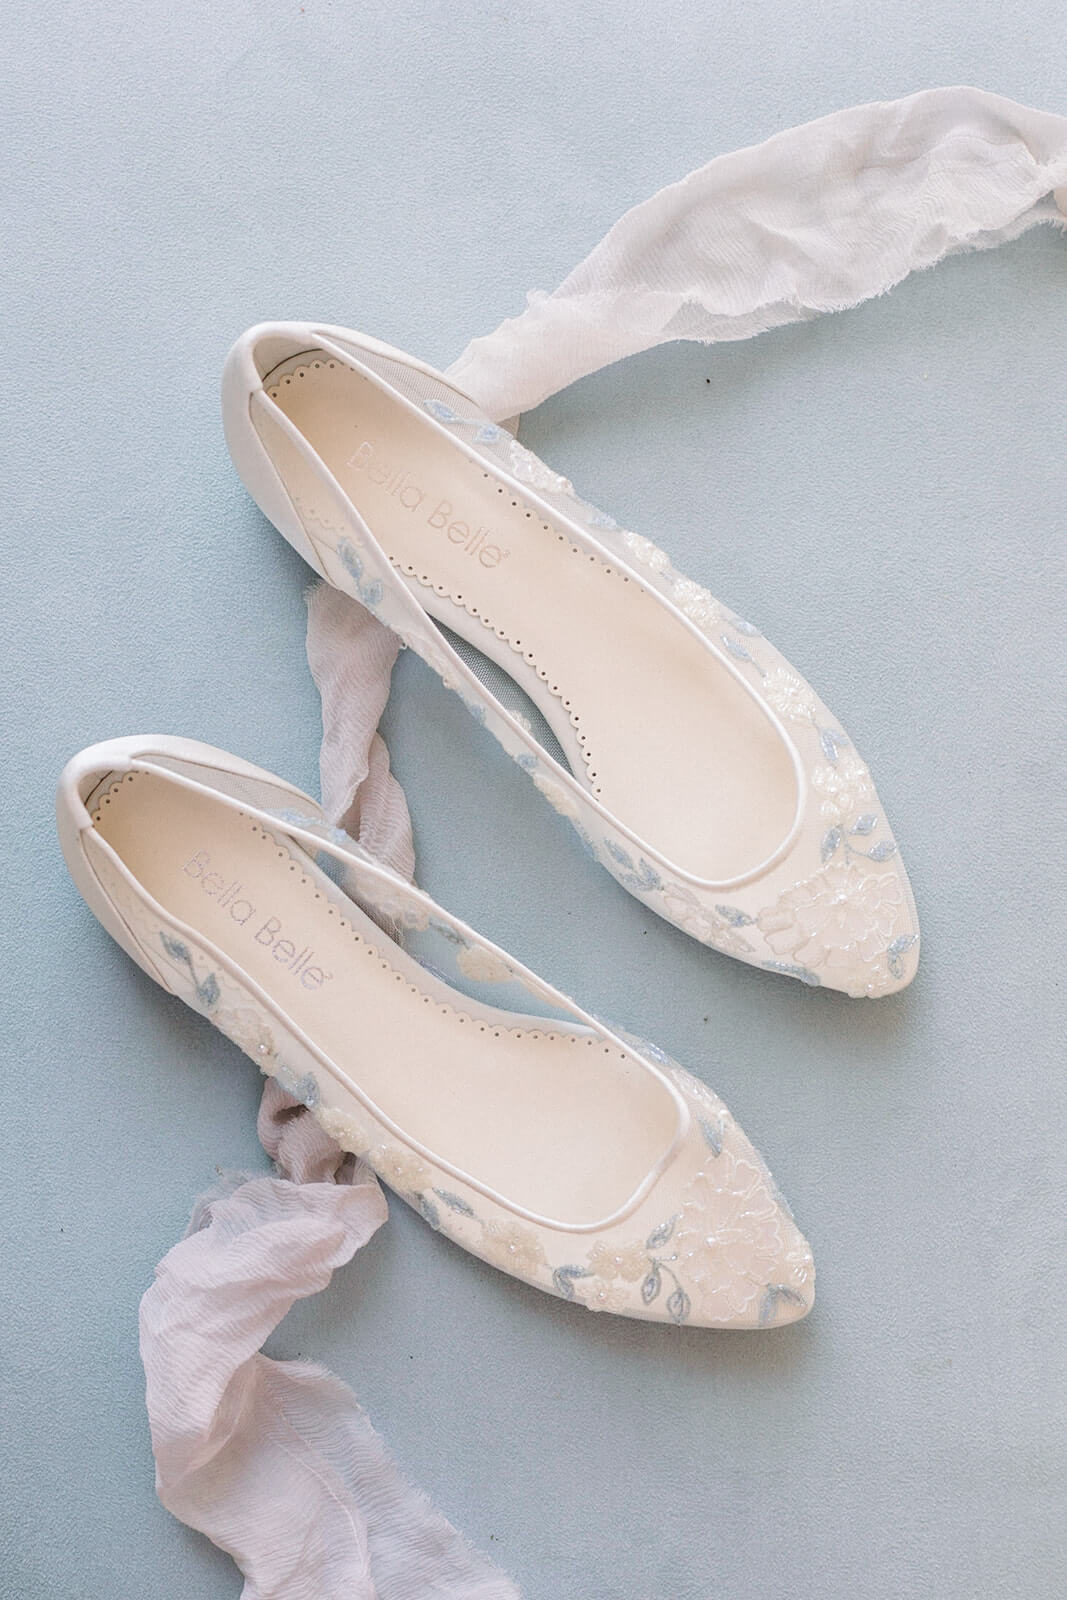 Bella Belle beach wedding shoes blue wedding flats